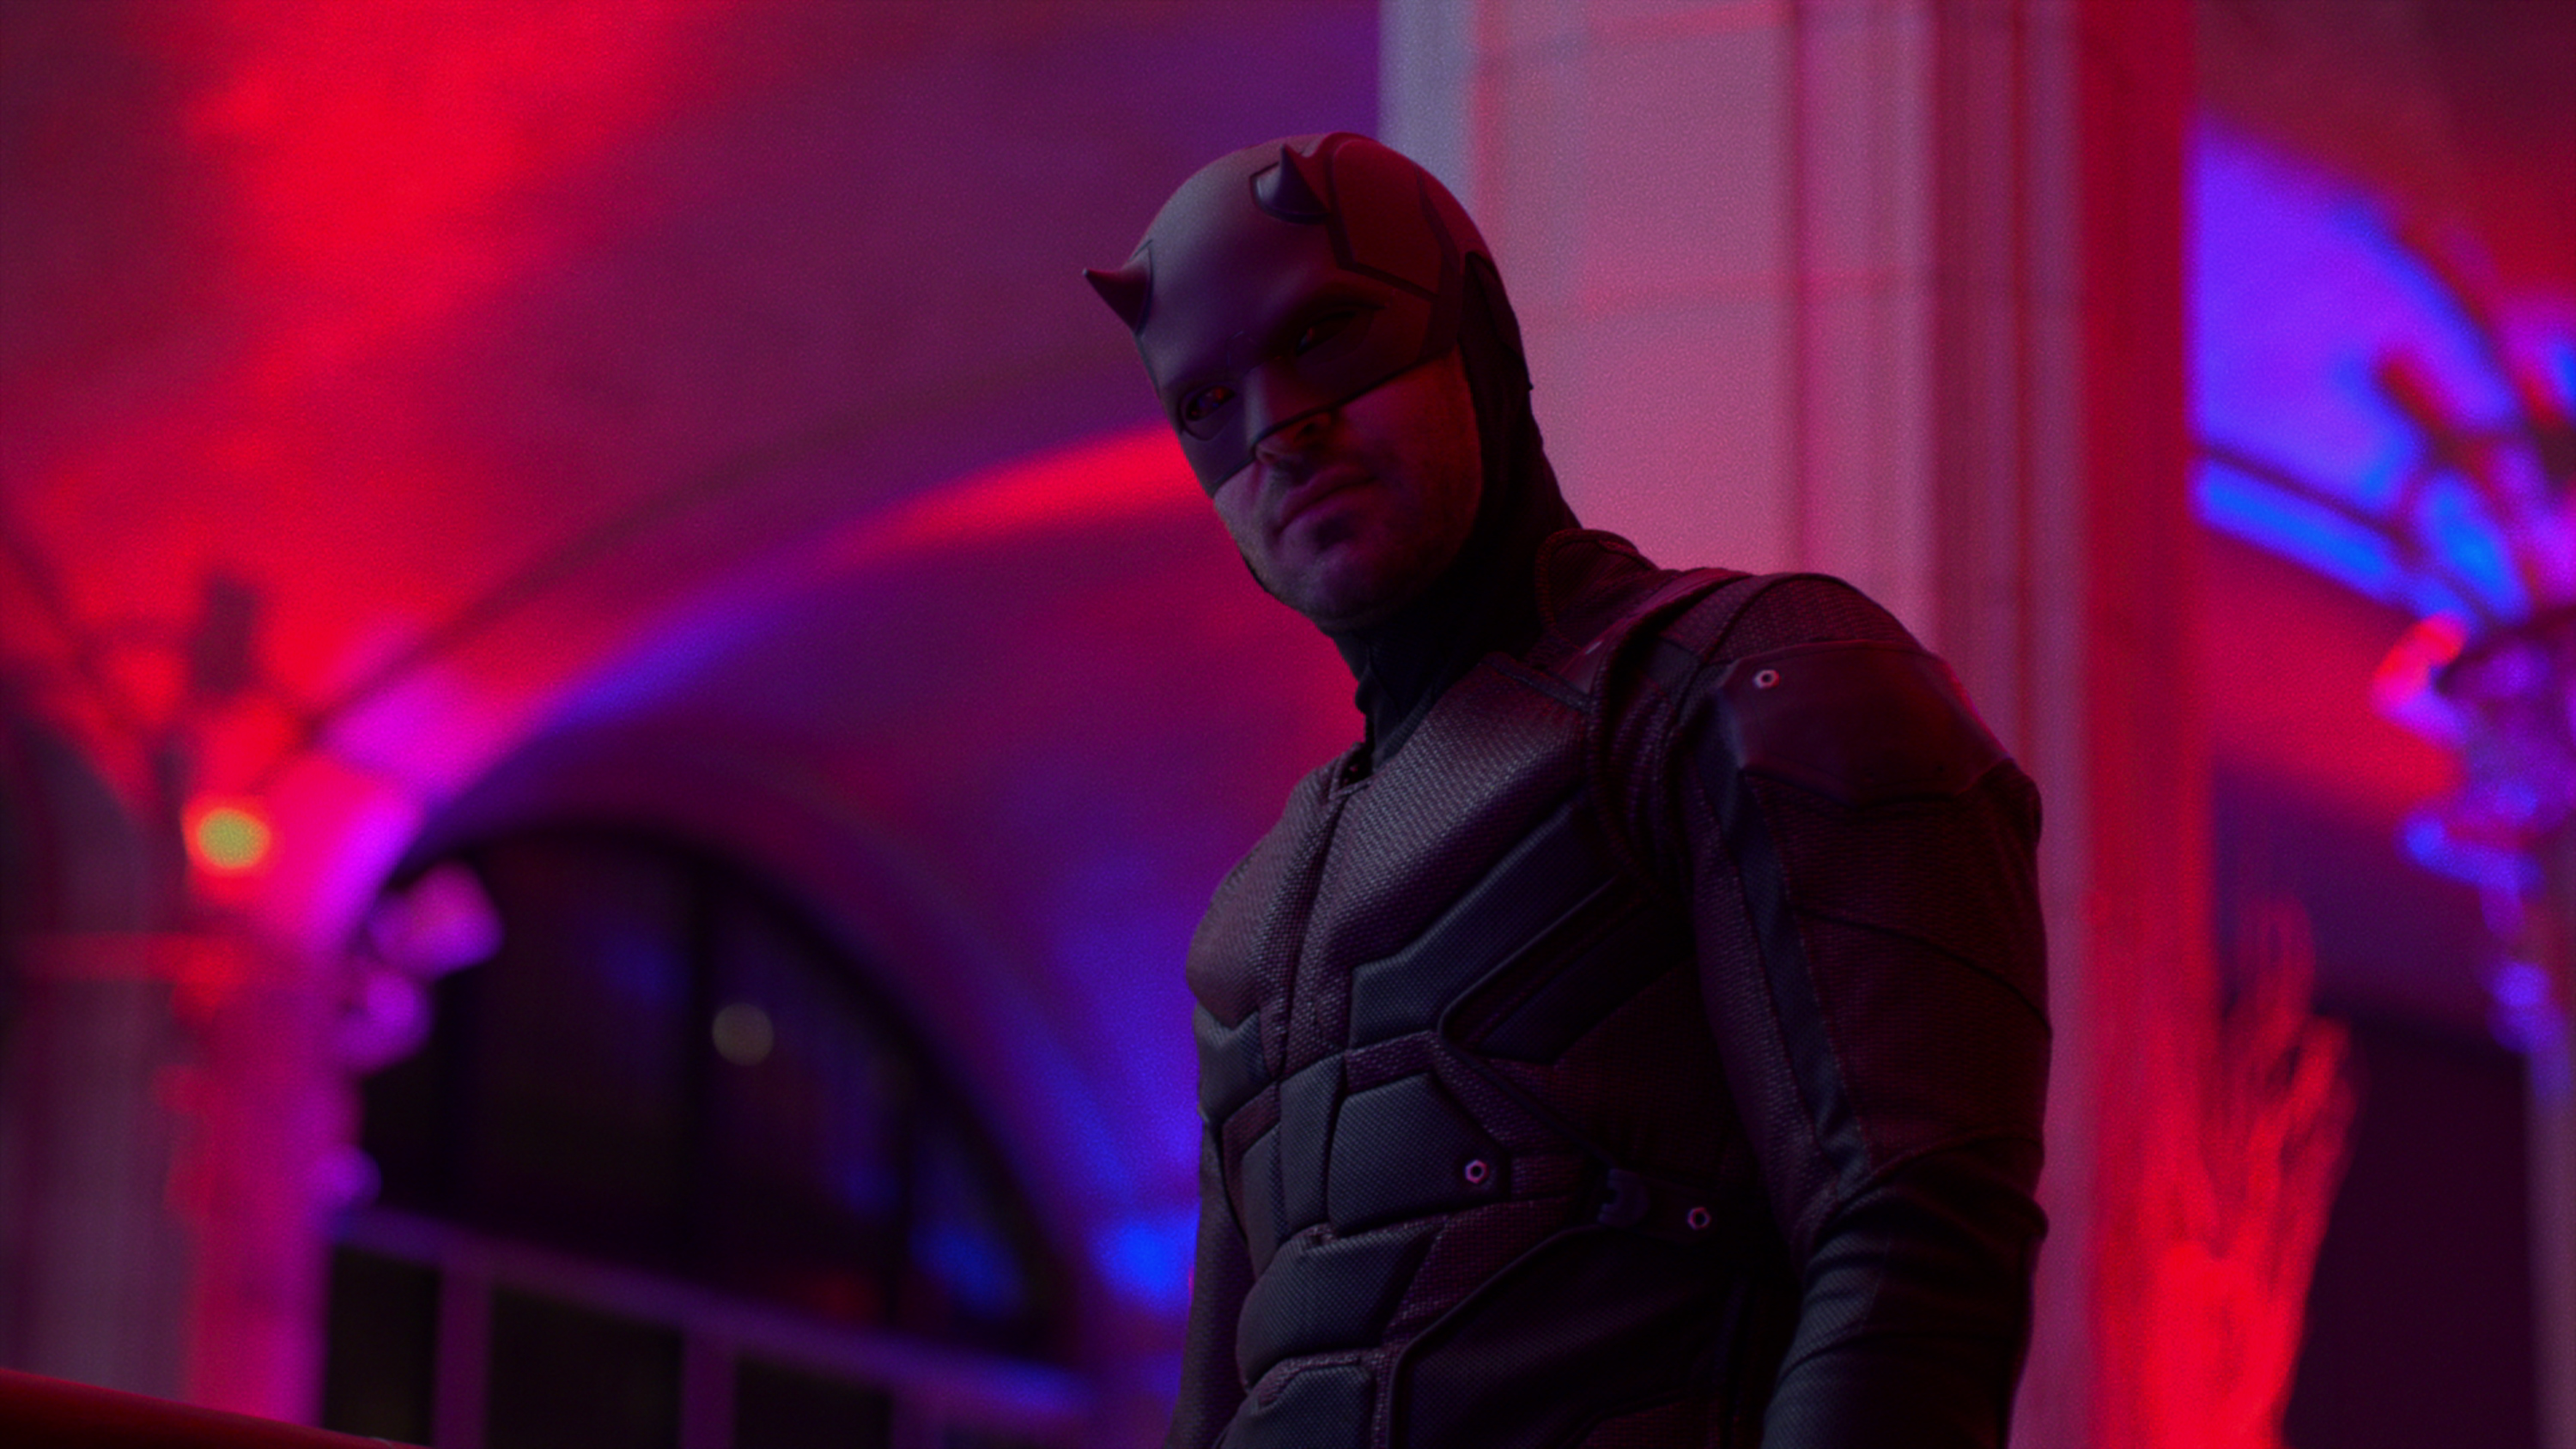 Daredevil Season 3 Teaser Embraces Its Darkness